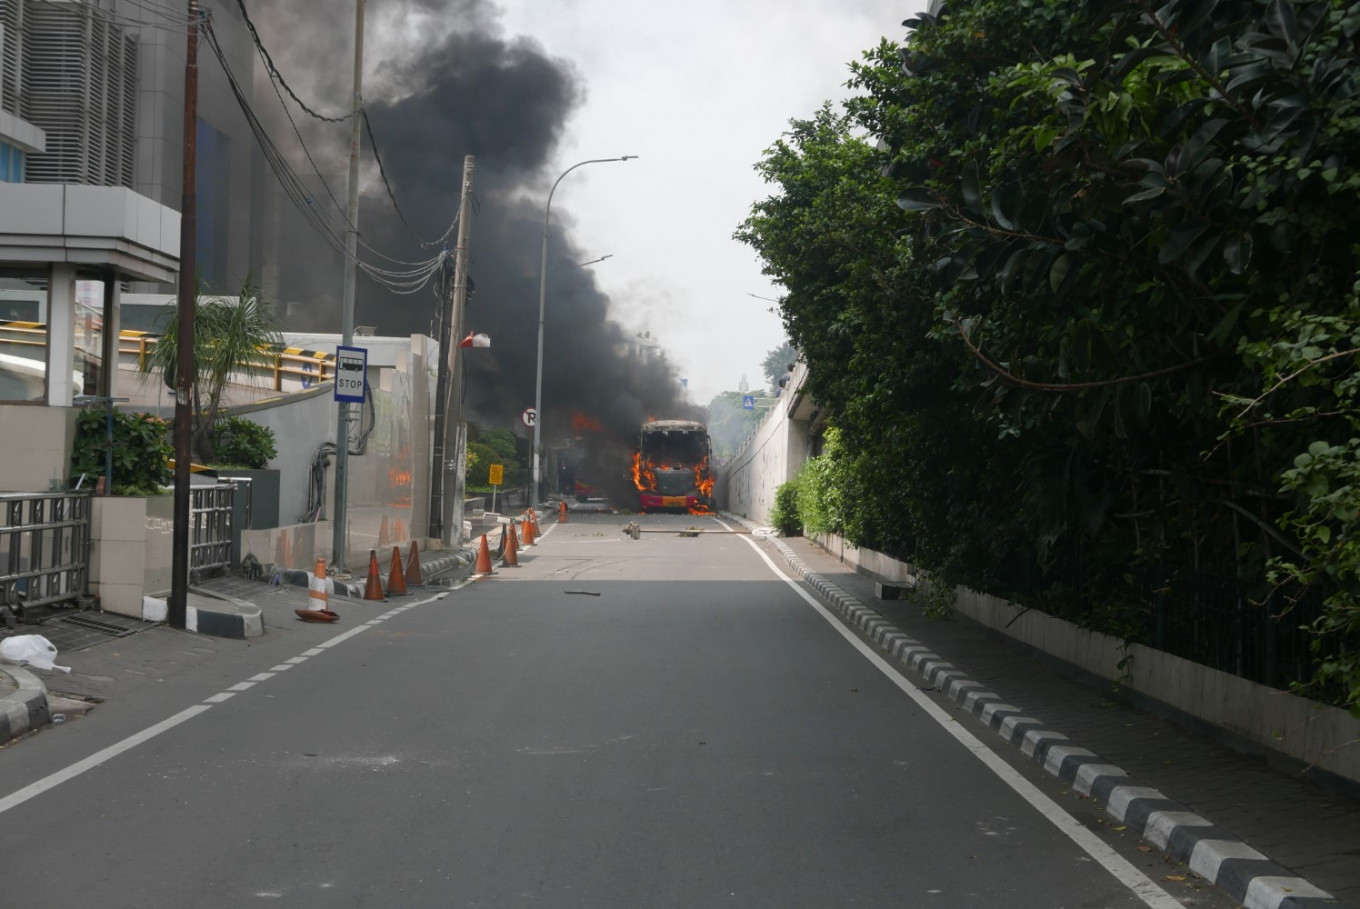 'It's provocateurs': Prabowo camp rejects blame for Jakarta riots